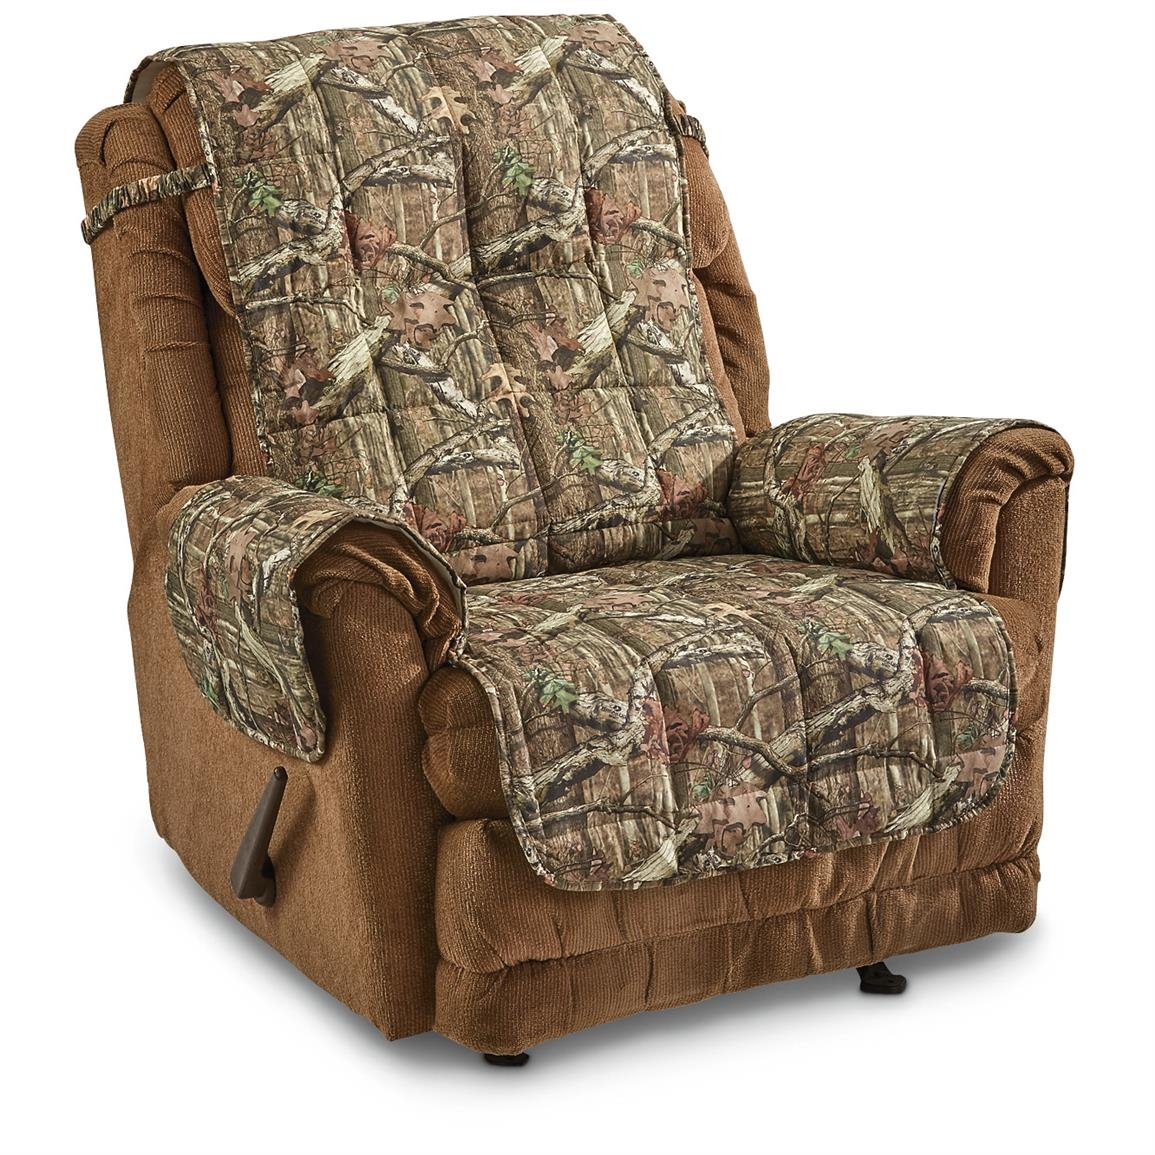 Mossy Oak Camo Furniture Covers 647980 Furniture Covers At Pertaining To Camo Sofa Cover (Image 11 of 15)